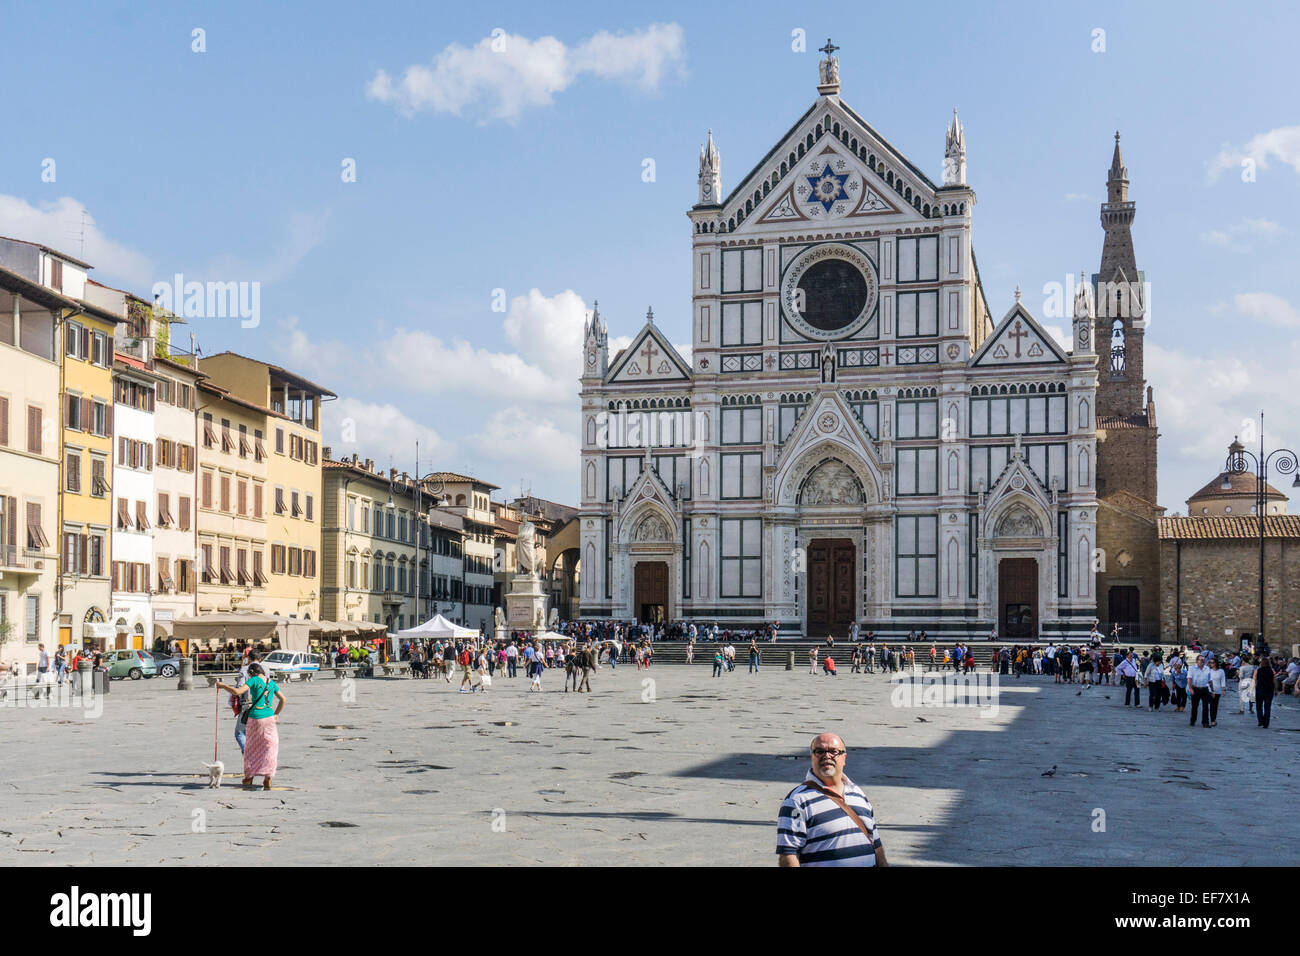 street scene people crowd piazza of magnificent Renaissance Franciscan basilica Santa Croce with neo Gothic facade - Stock Image